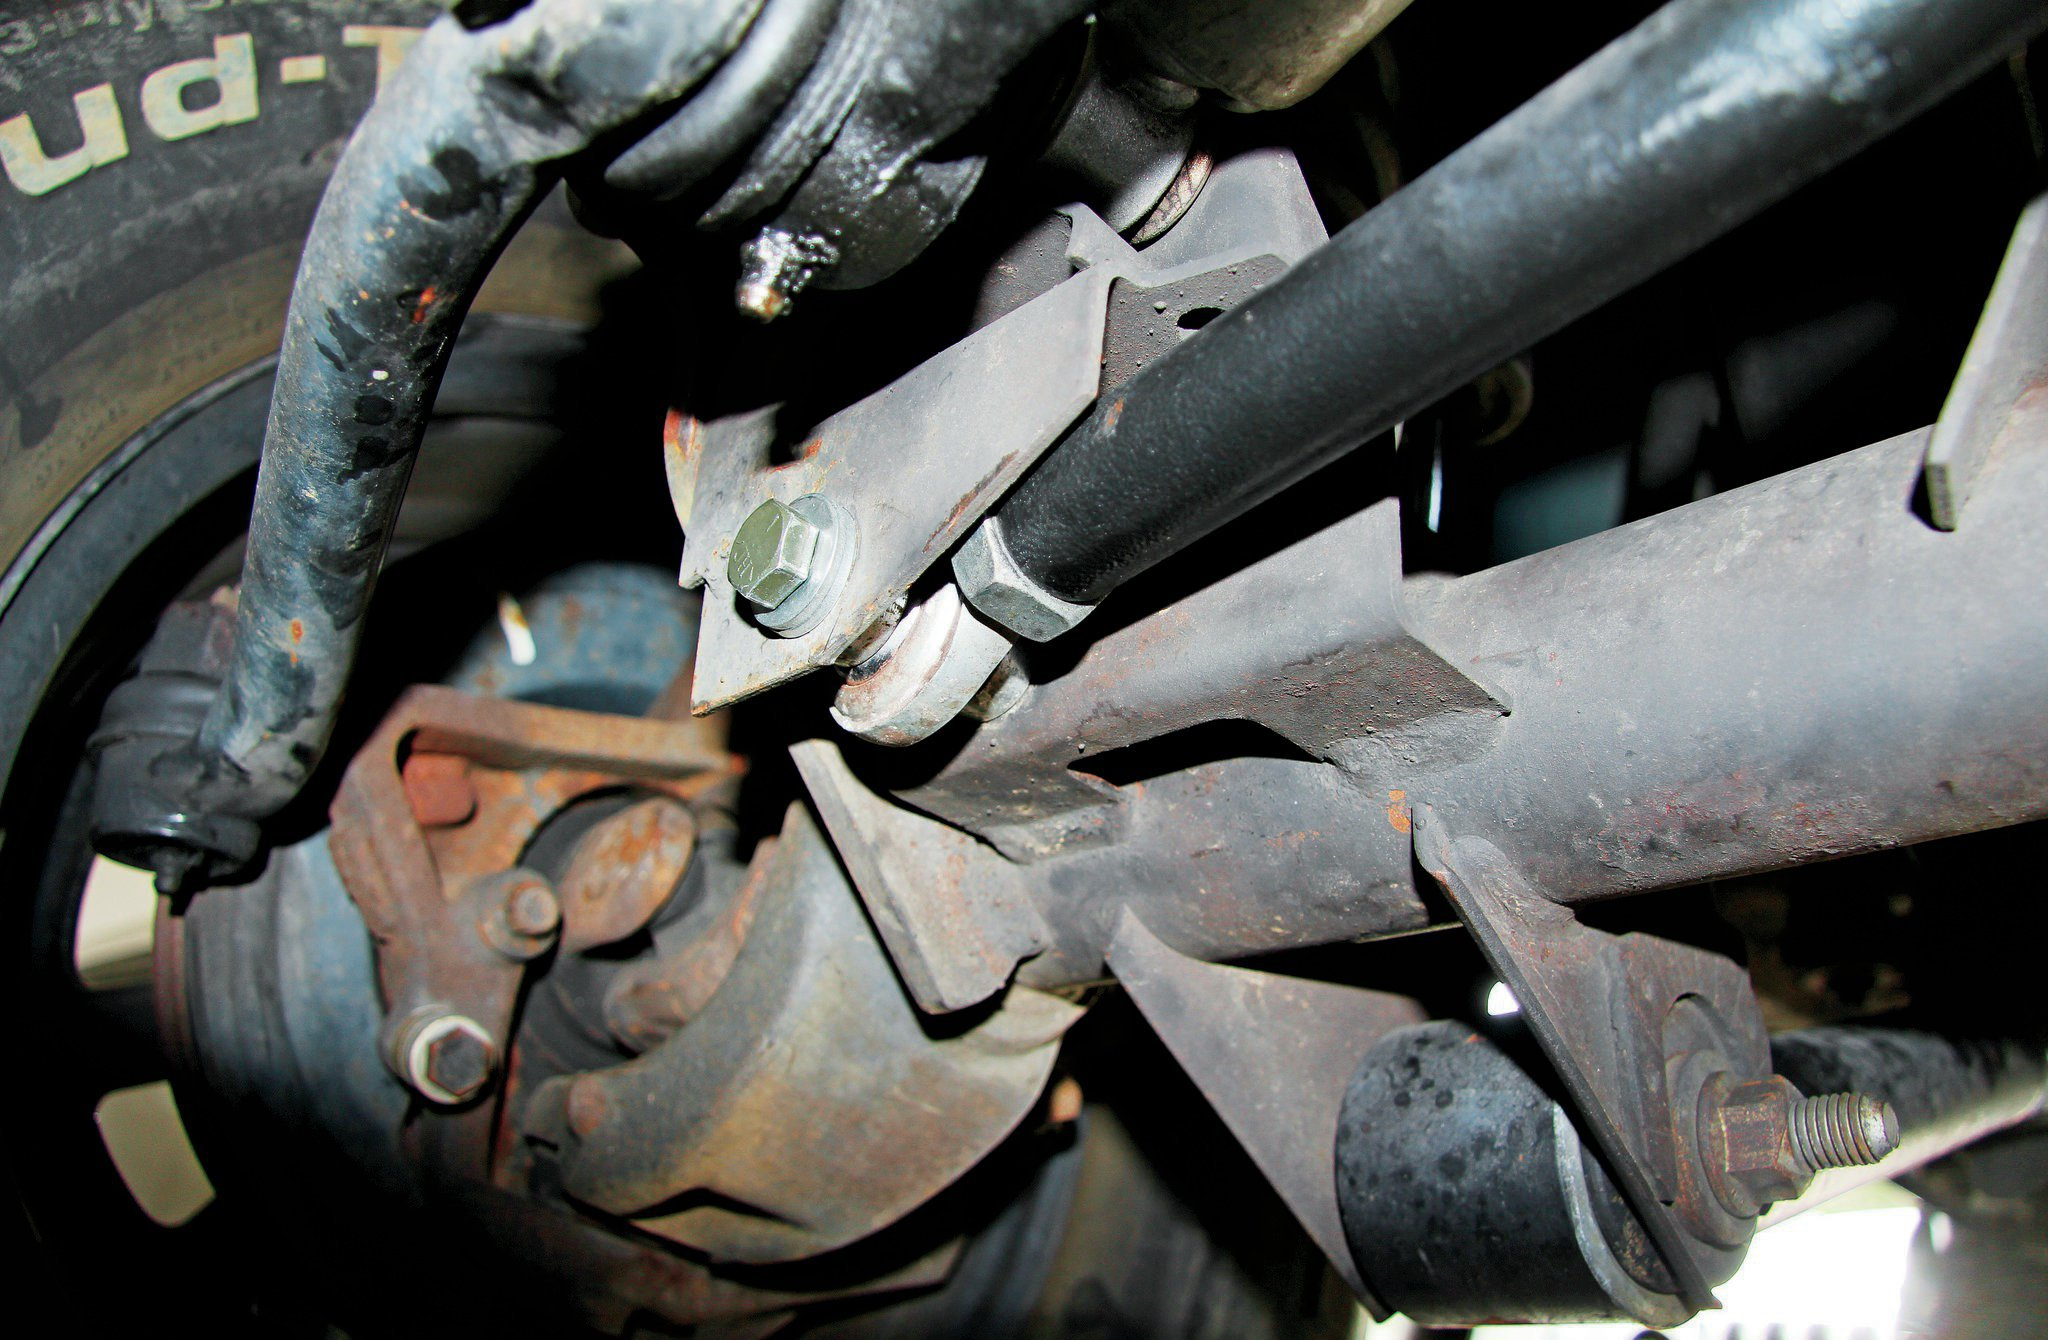 If you are looking at a lifted Wrangler and the front end feels a little shaky, we would eye the track bar mount at the axle. The bolt could simply be loose, but we've also seen the bolt holes deform into an oblong mess. This will require upping the track bar bolt size (along with a new joint) or replacing the bracket altogether. Another culprit is the bushing or rod end being worn. Have a friend rotate the steering wheel from left and right while you look closely at the track bar bushing. If you noticed the bar is moving or plunging significantly, it's likely the bushing is bad.